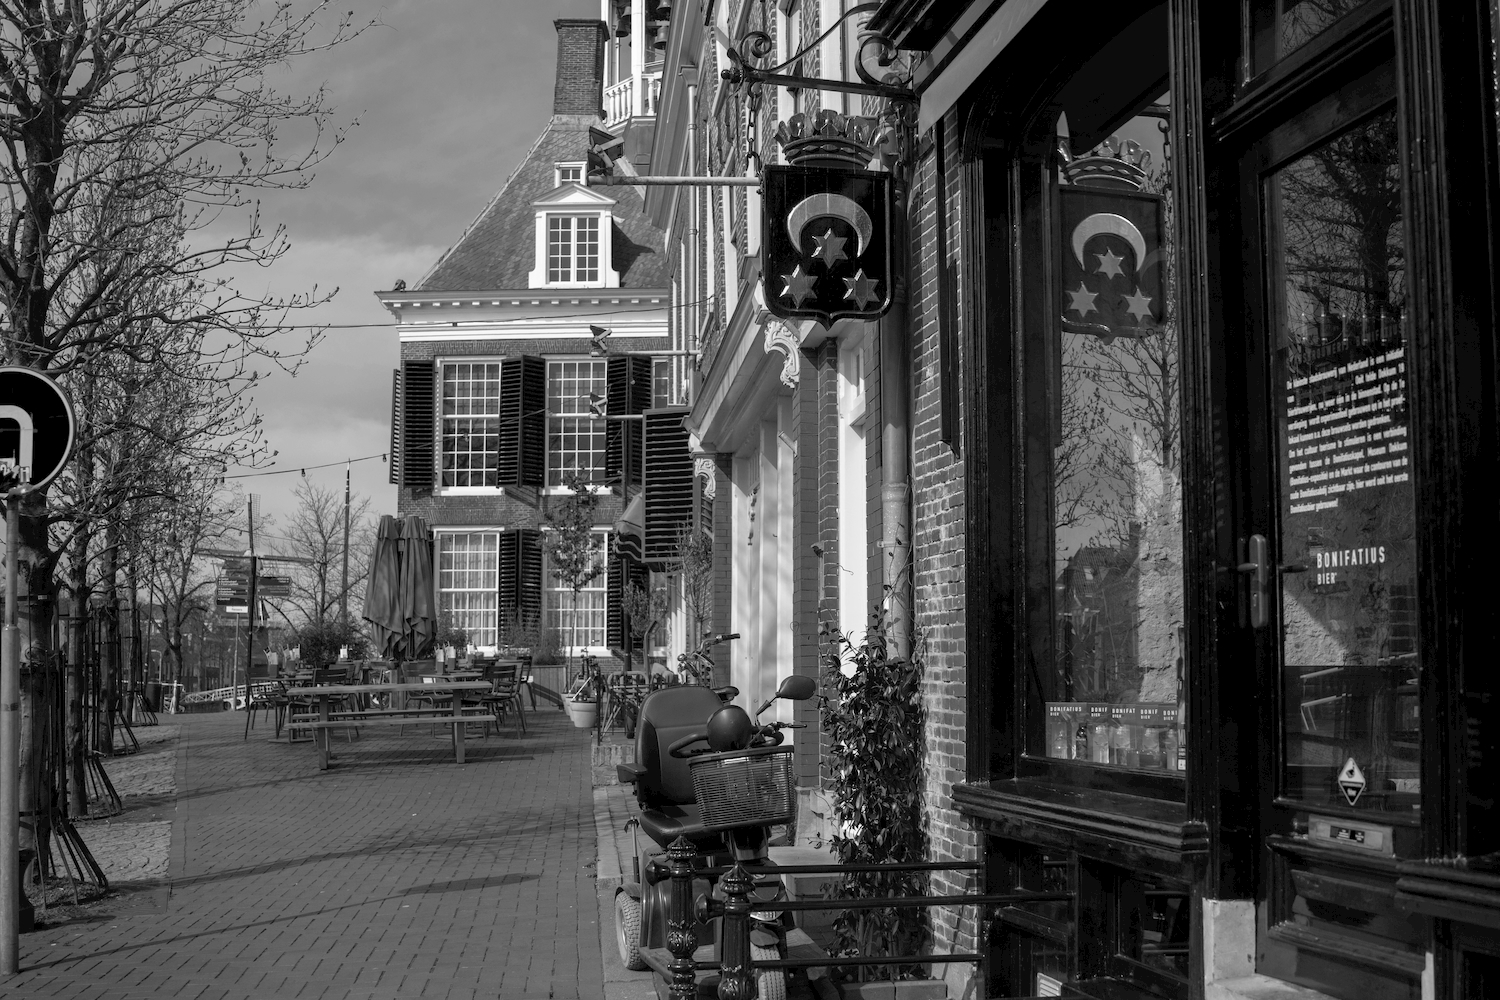 Dokkum centrum straatbeeld